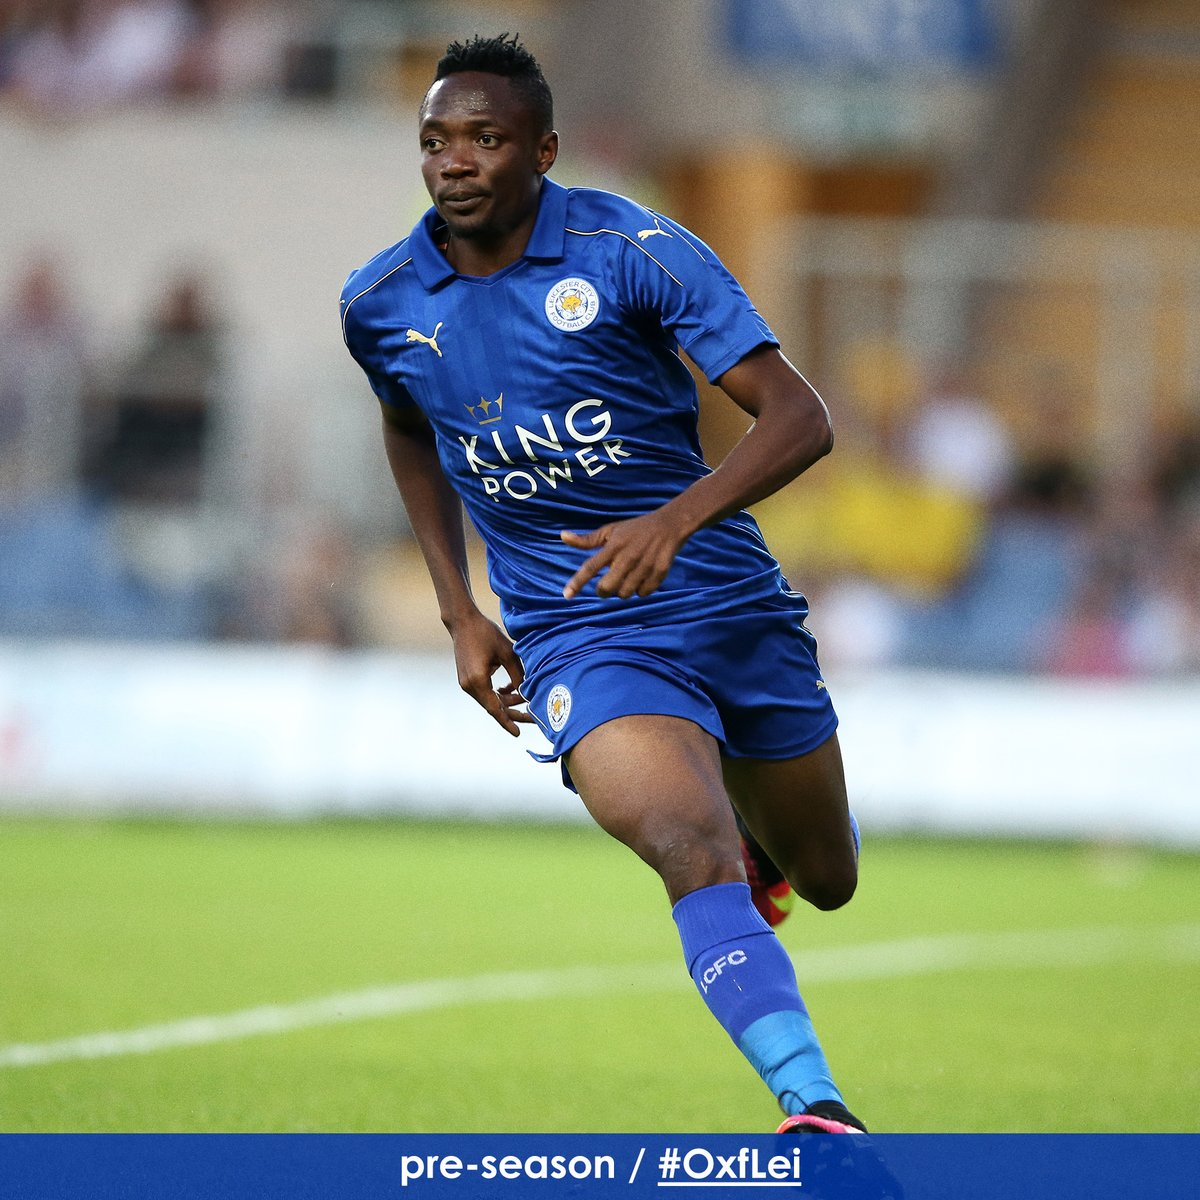 Musa Makes Impressive Leicester Debut In Pre-Season Win